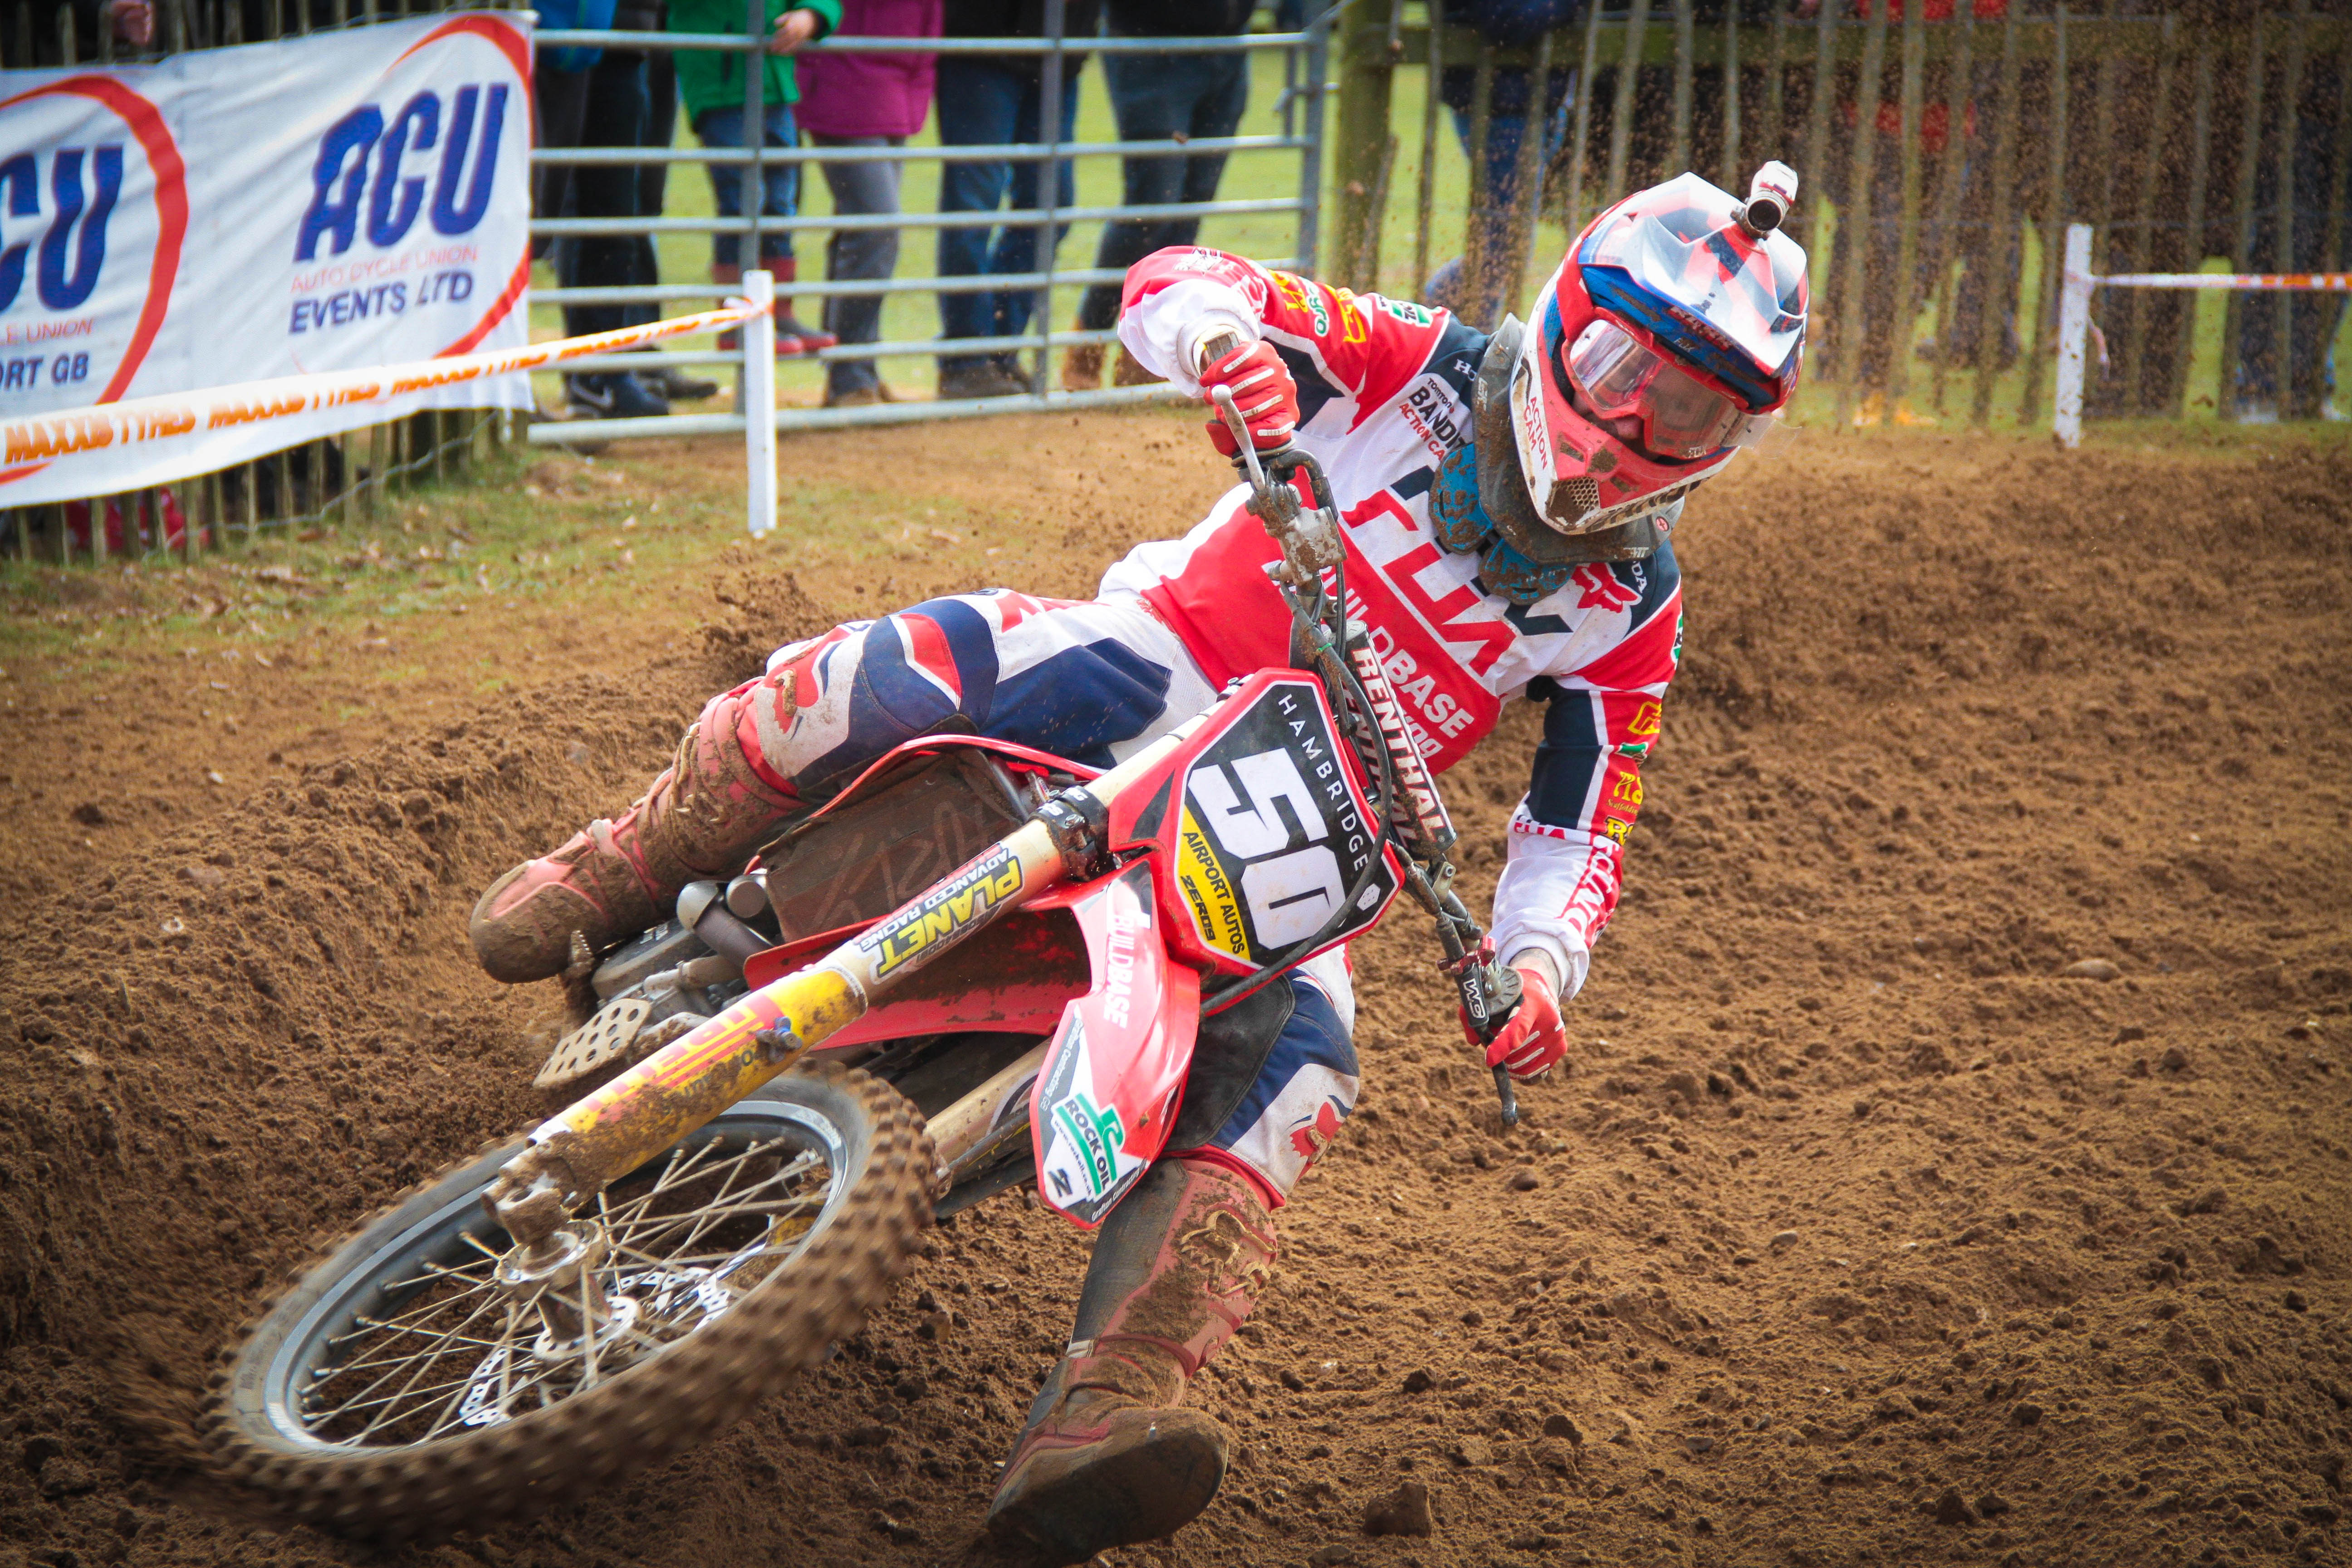 Professional rider Martin Barr in the first round of the British Championships Picture: Monika Parnarauskaite